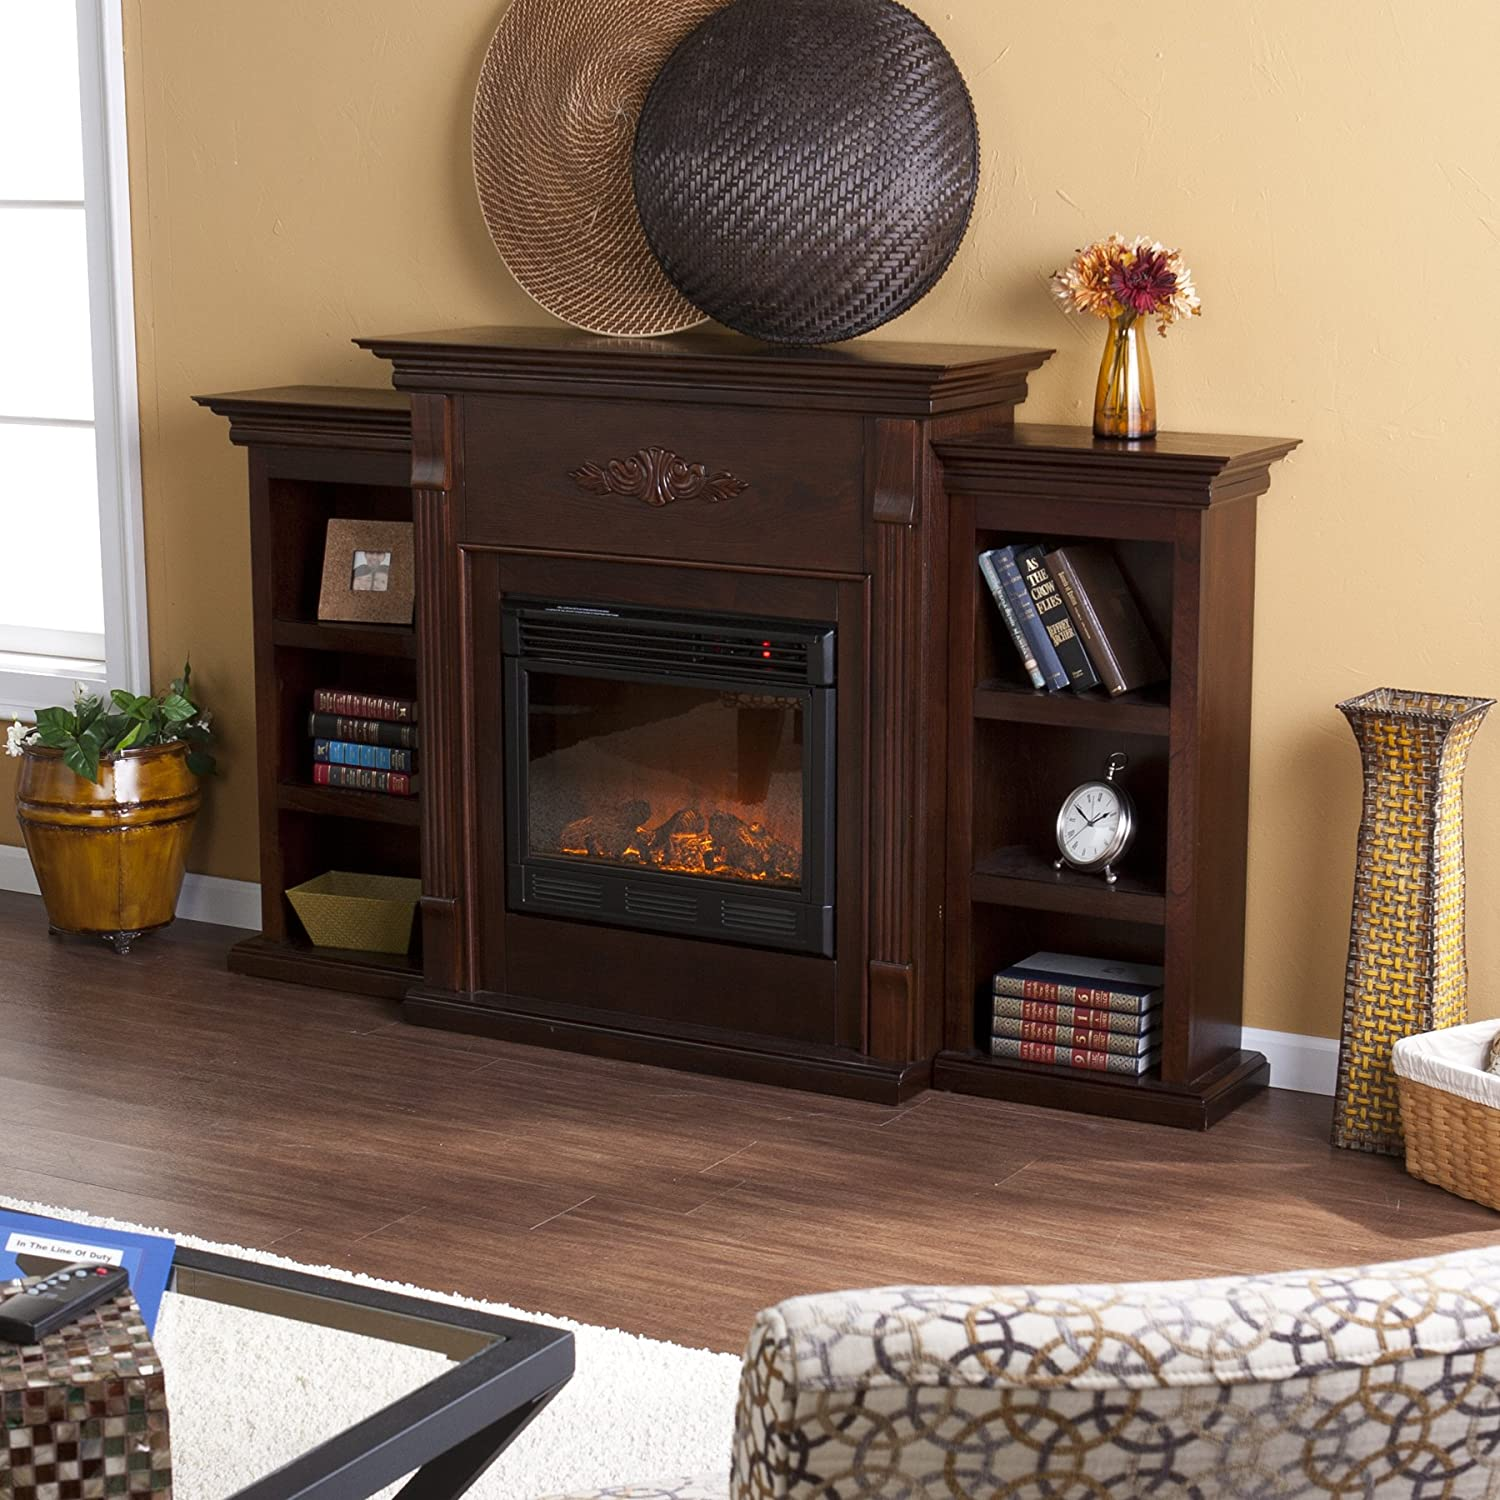 Amazon.com: SEI Tennyson Electric Fireplace with Bookcases ...